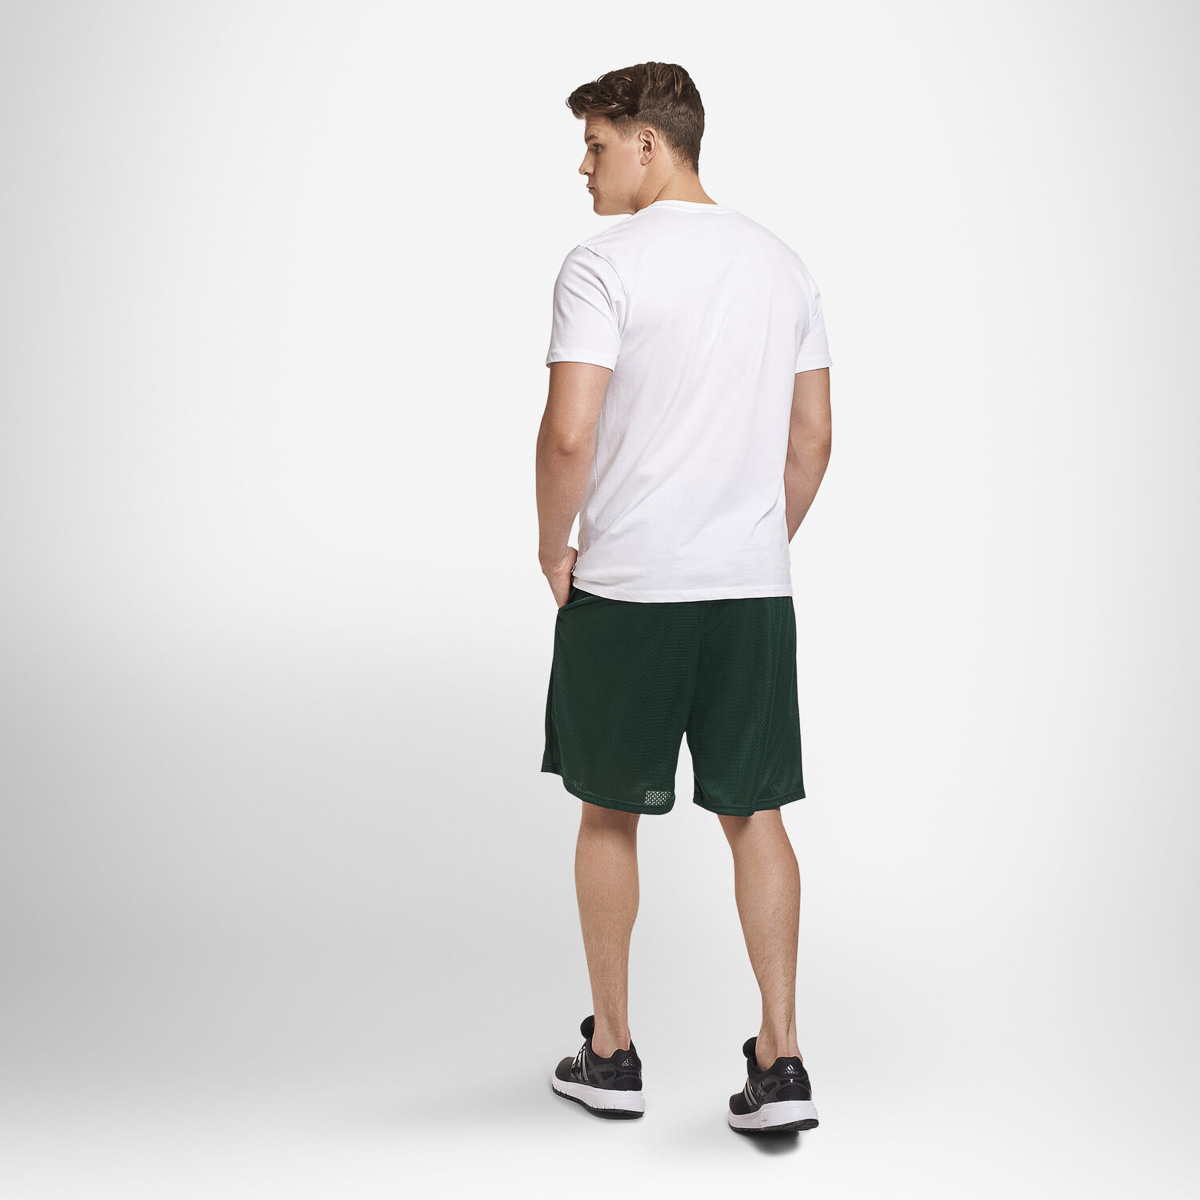 Russell-Athletic-Mens-Shorts-With-Pockets-Mesh-Moisture-Wicking-Gym-Activewear thumbnail 9